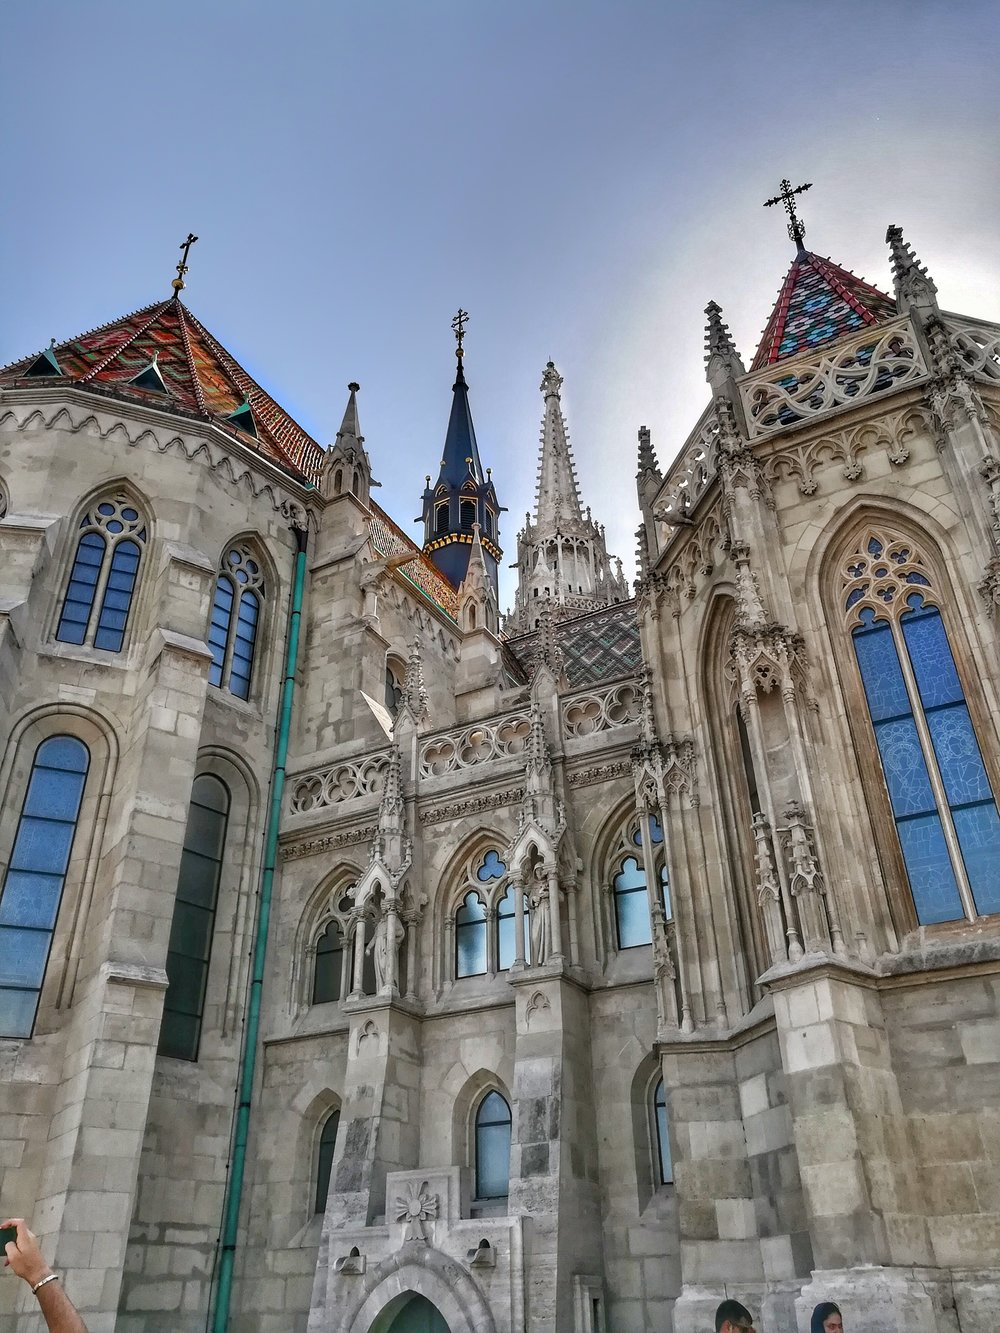 Matthias church (and the cute roof tiles you'll see spread throughout the city)